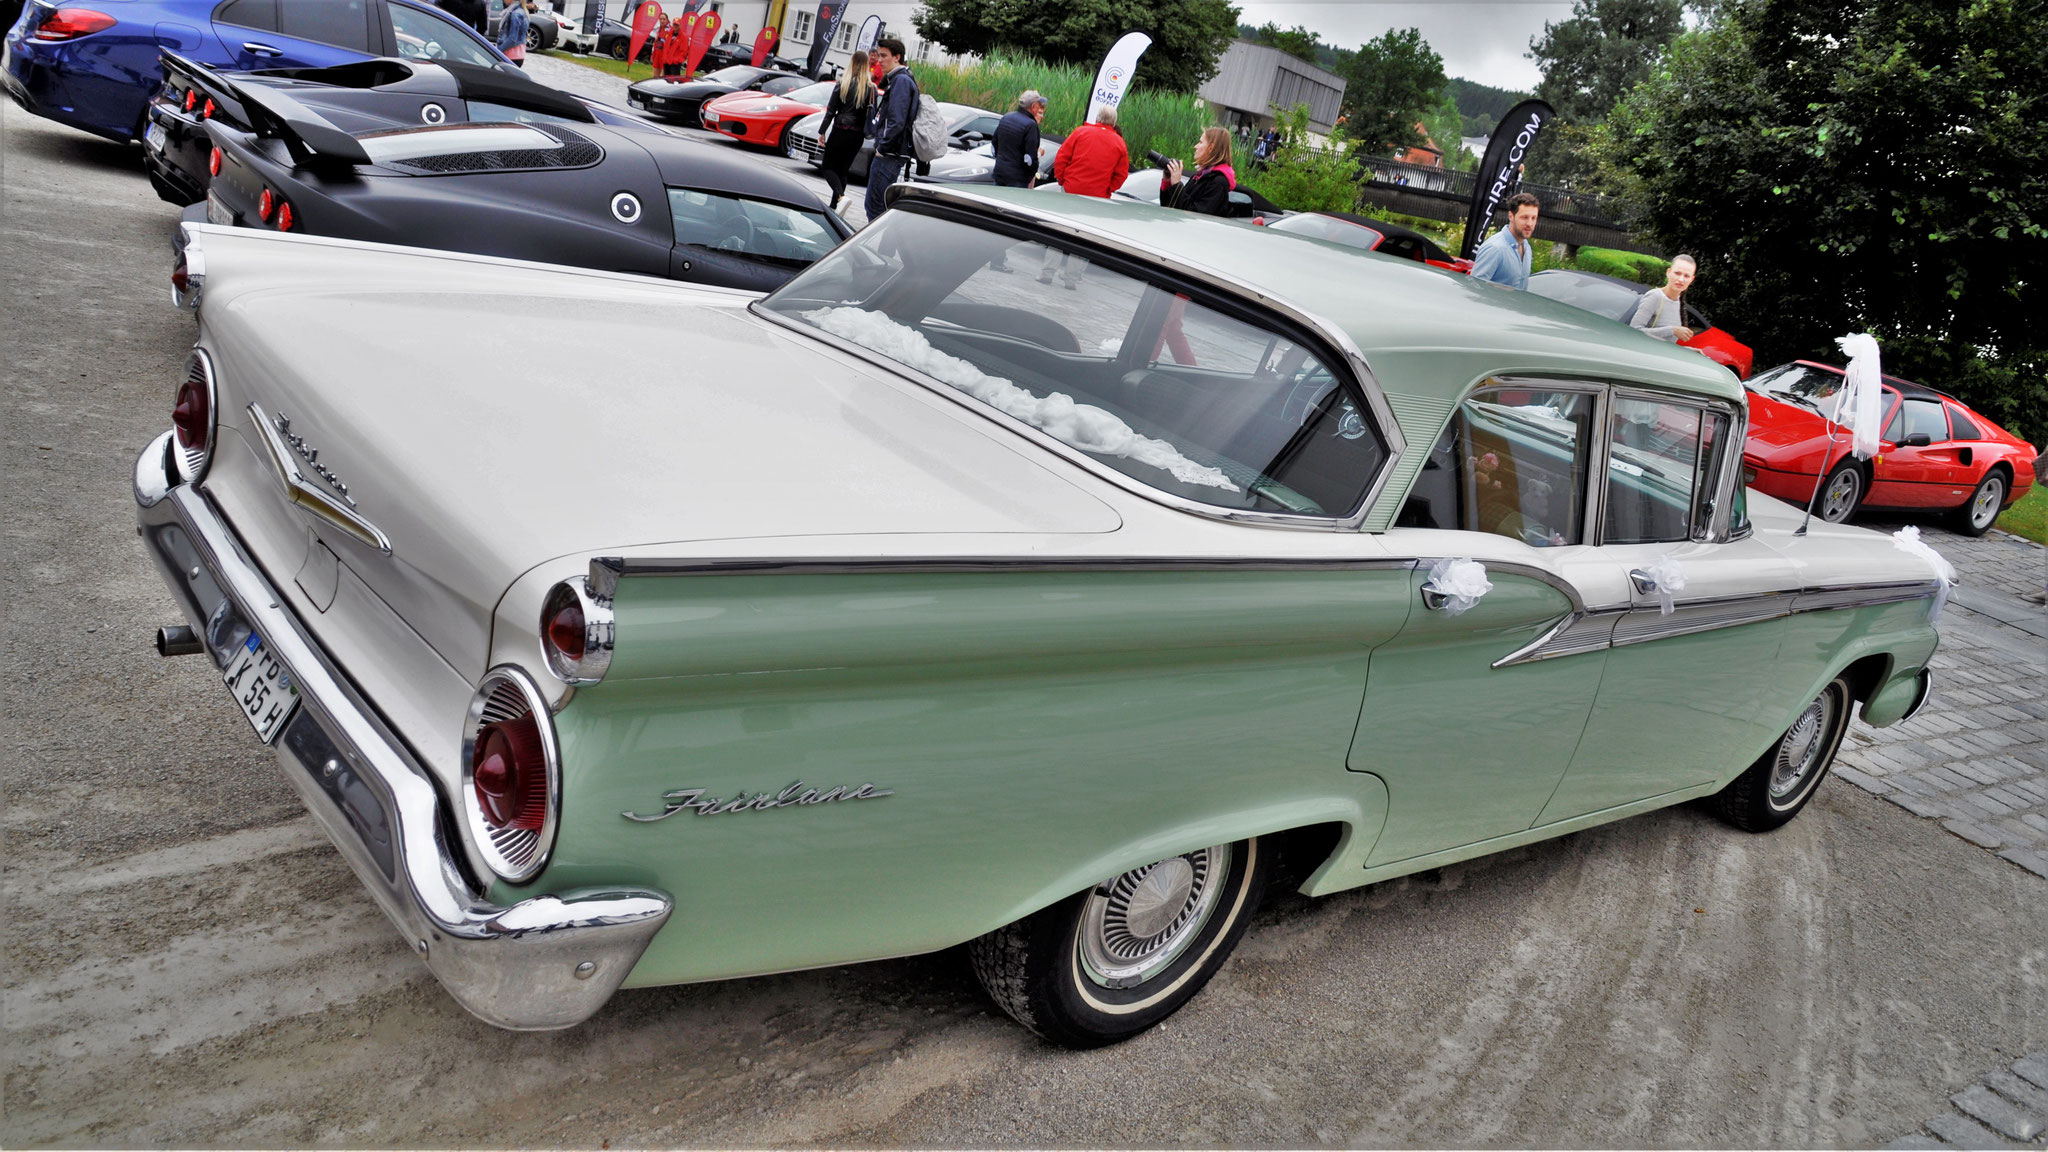 Ford Fairlane - FFB-K-55H